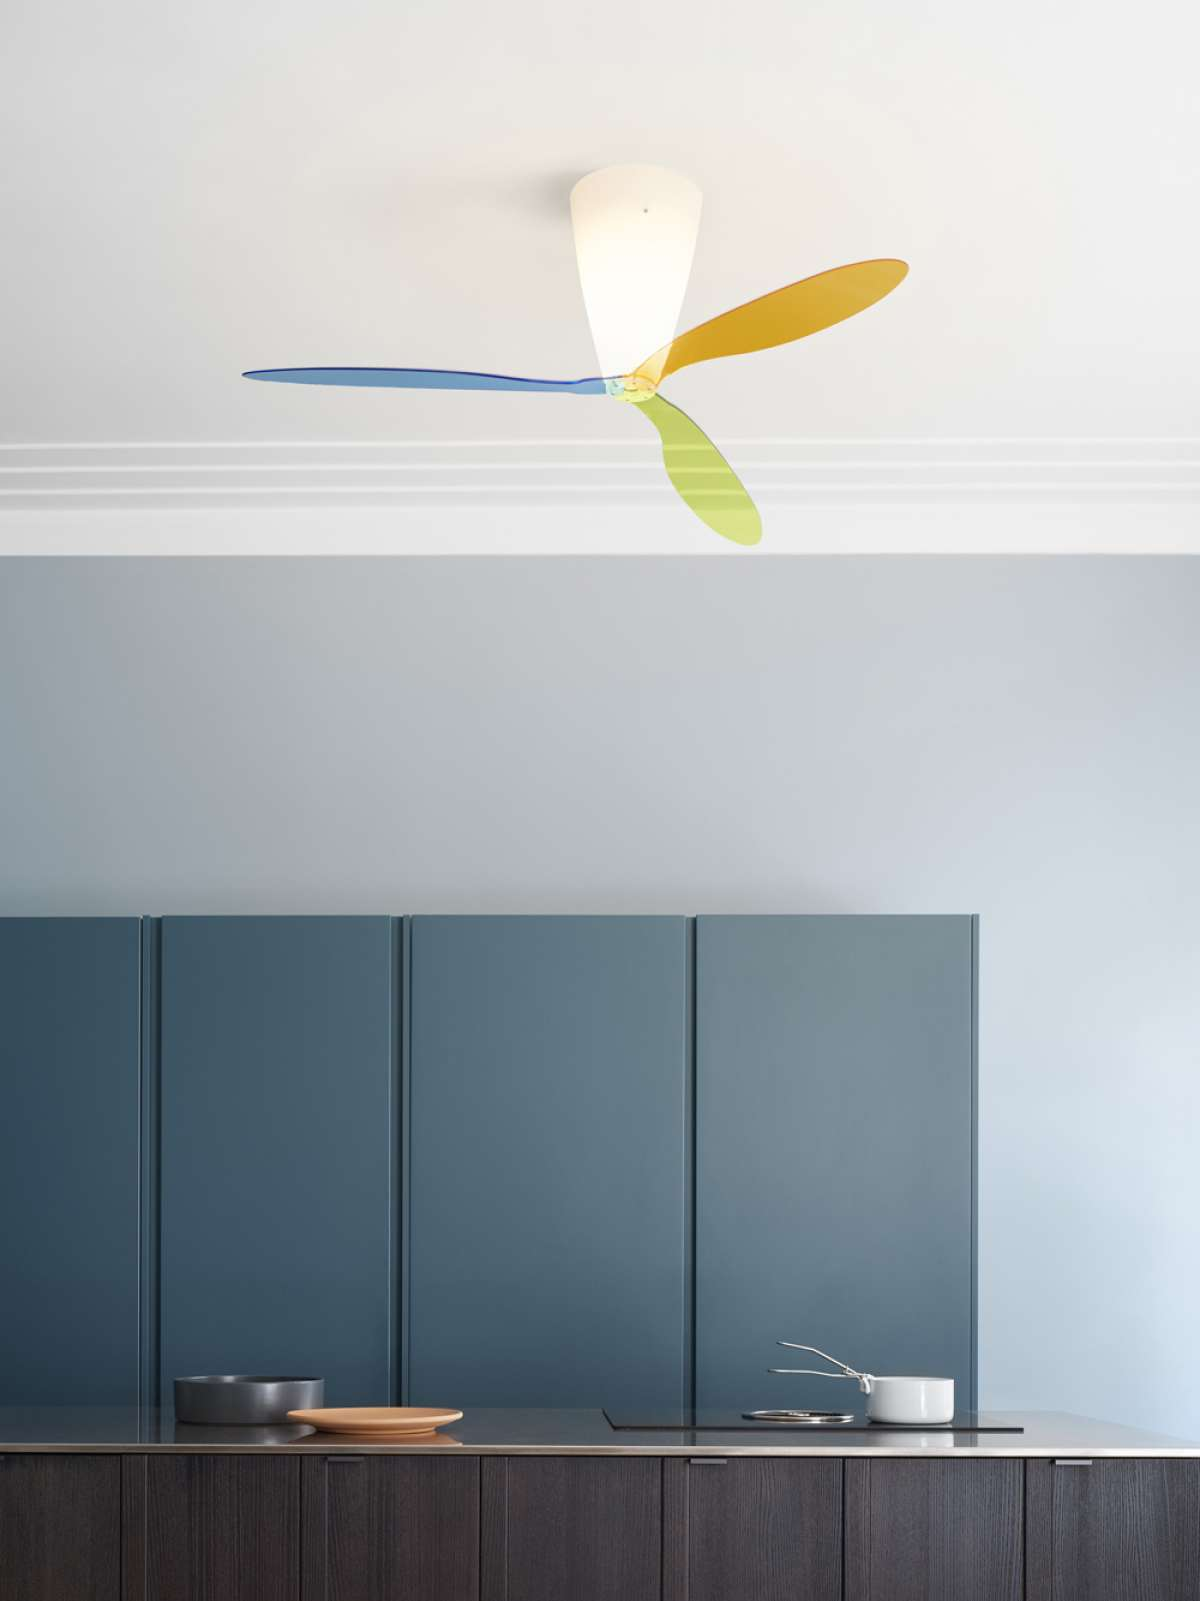 Blow Ceiling Lamp - Light in weight, essential in design, Blow moves air at variable speeds with a minimum of noise. The rotation of the coloured or transparent methacrylate blades does not interfere with the emission of white light in the room.  A special control makes it possible to invert the direction of rotation of the blades. This enables the user to regenerate the continuous, mono-directional air flow, and above all to draw the warm air from convectors downward in the winter months, significantly improving energy efficiency.  Infrared remote control is available on request please enquire   | Matter of Stuff